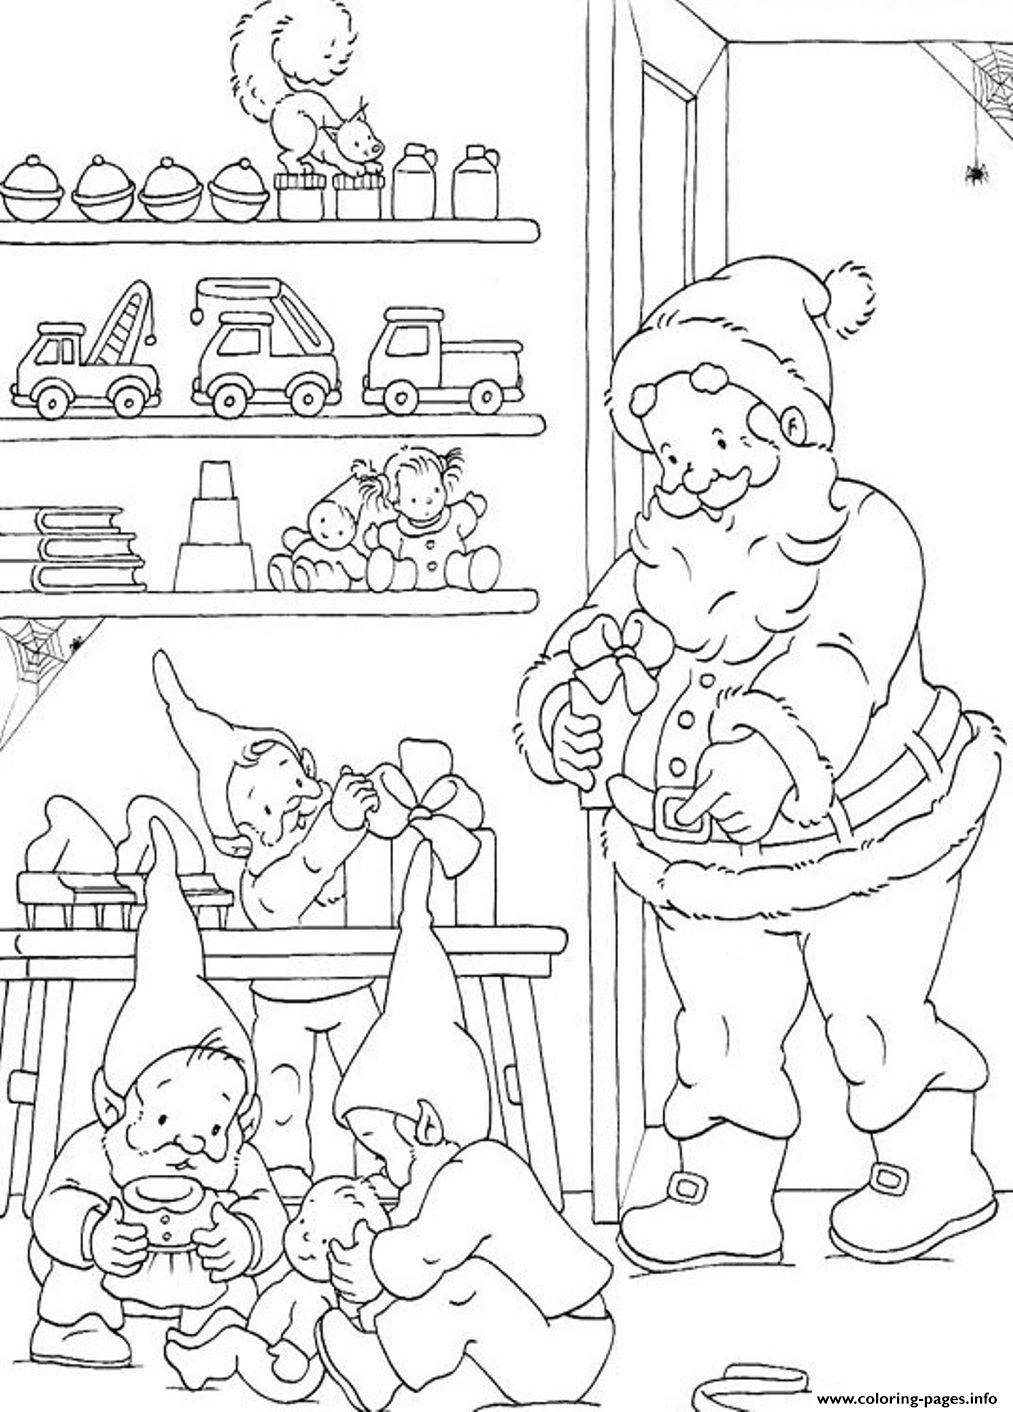 Coloring Pages Of Santa And Elves Preparing The Christmas ...